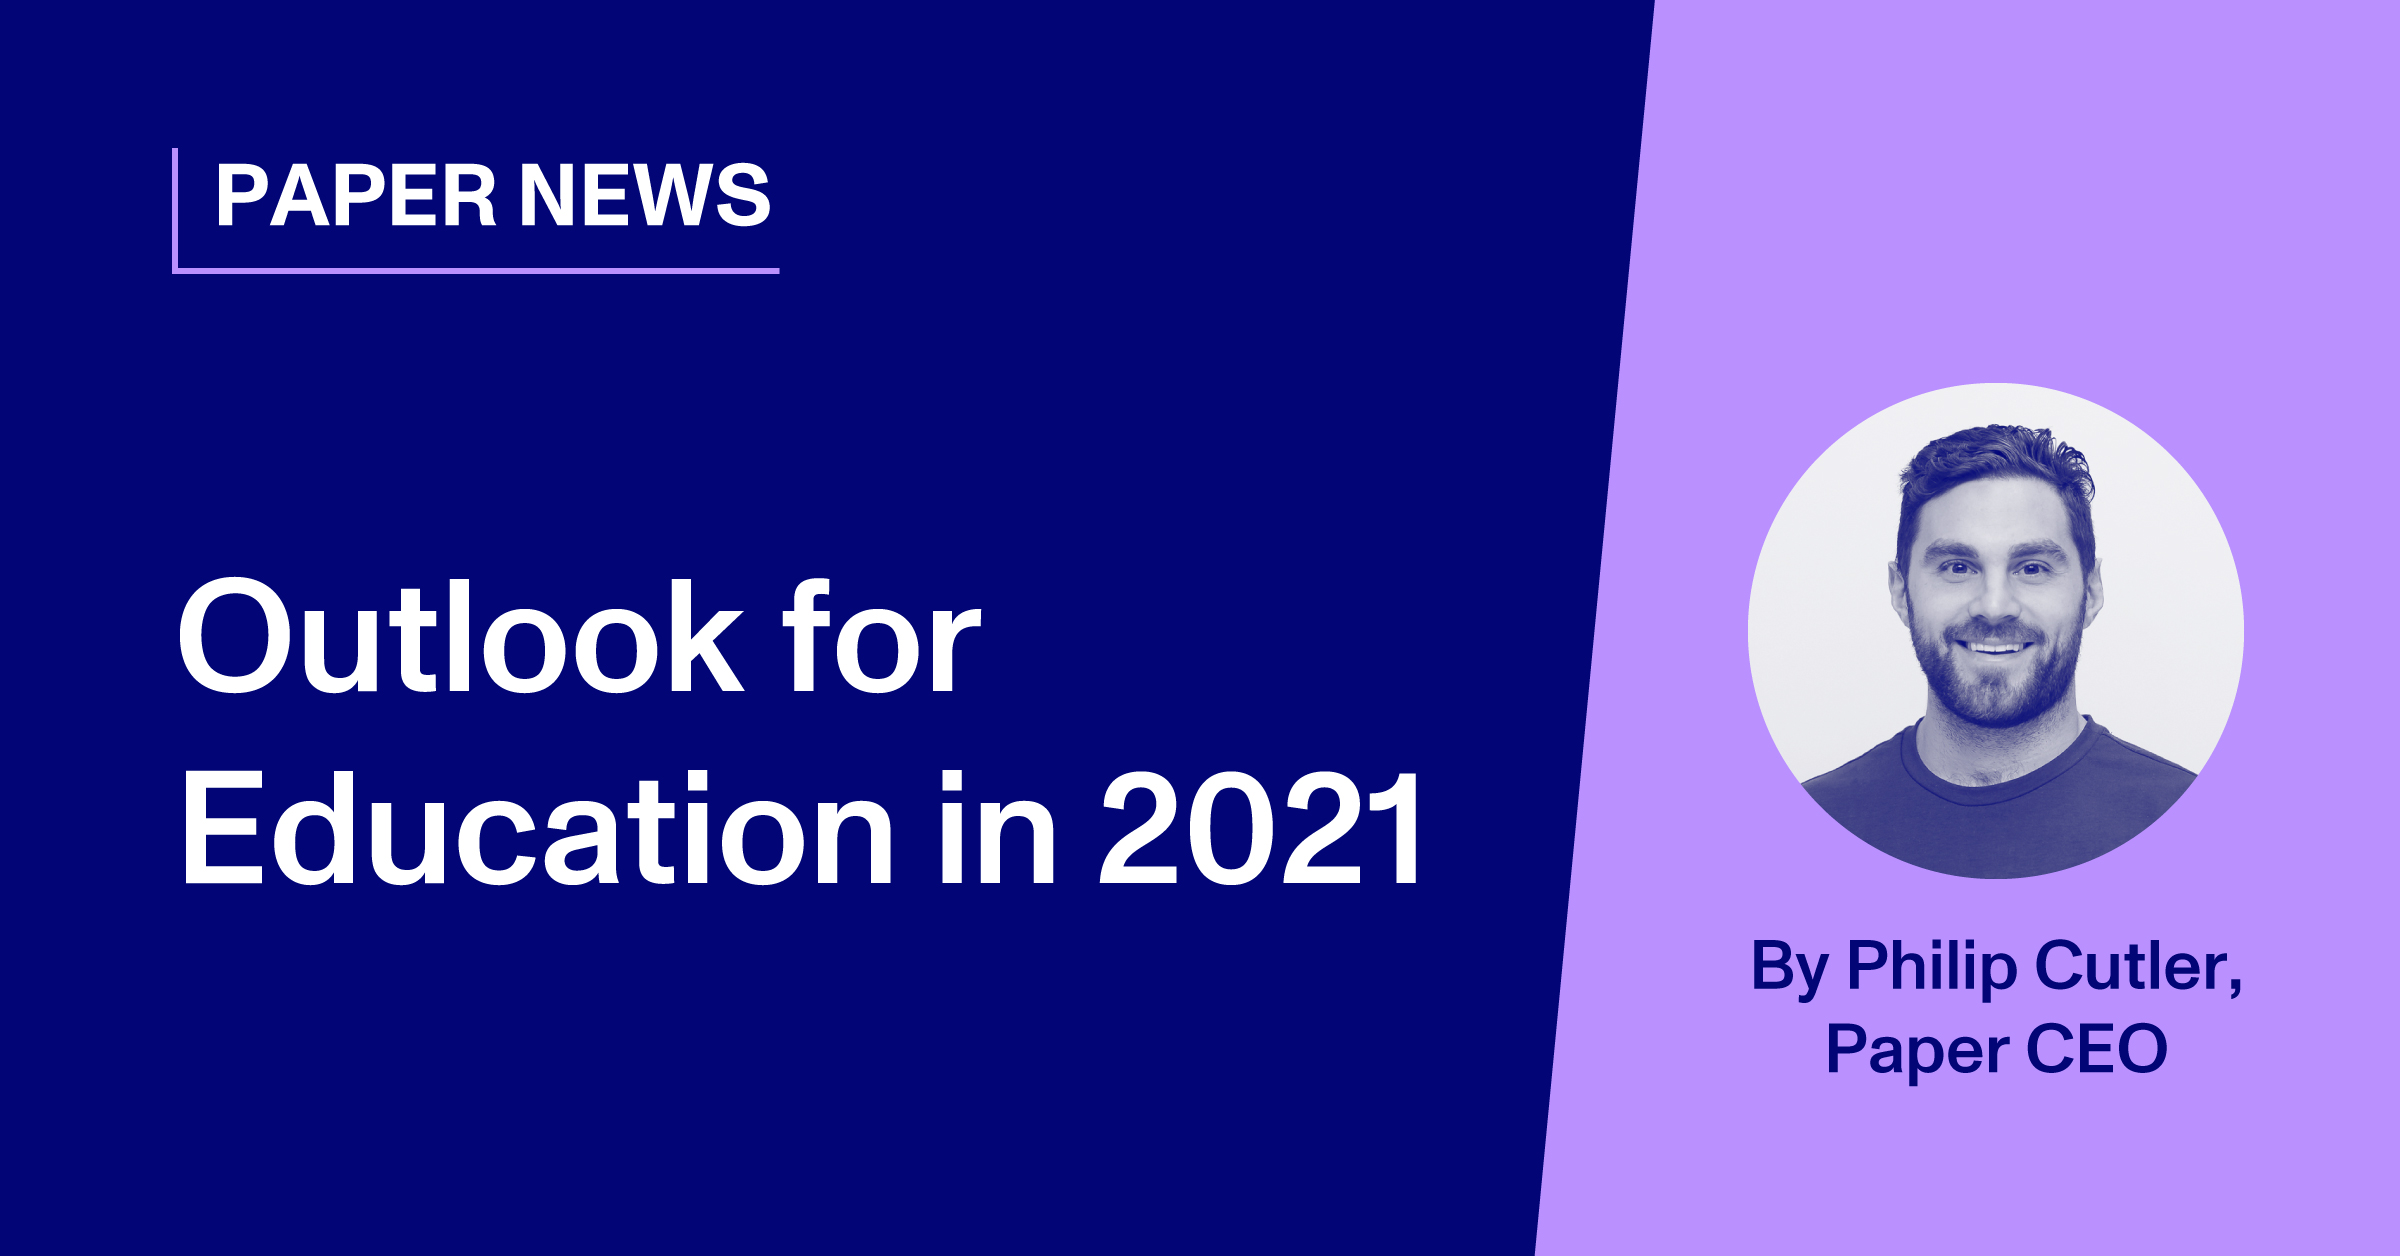 Outlook for Education in 2021, by Philip Cutler, Paper CEO